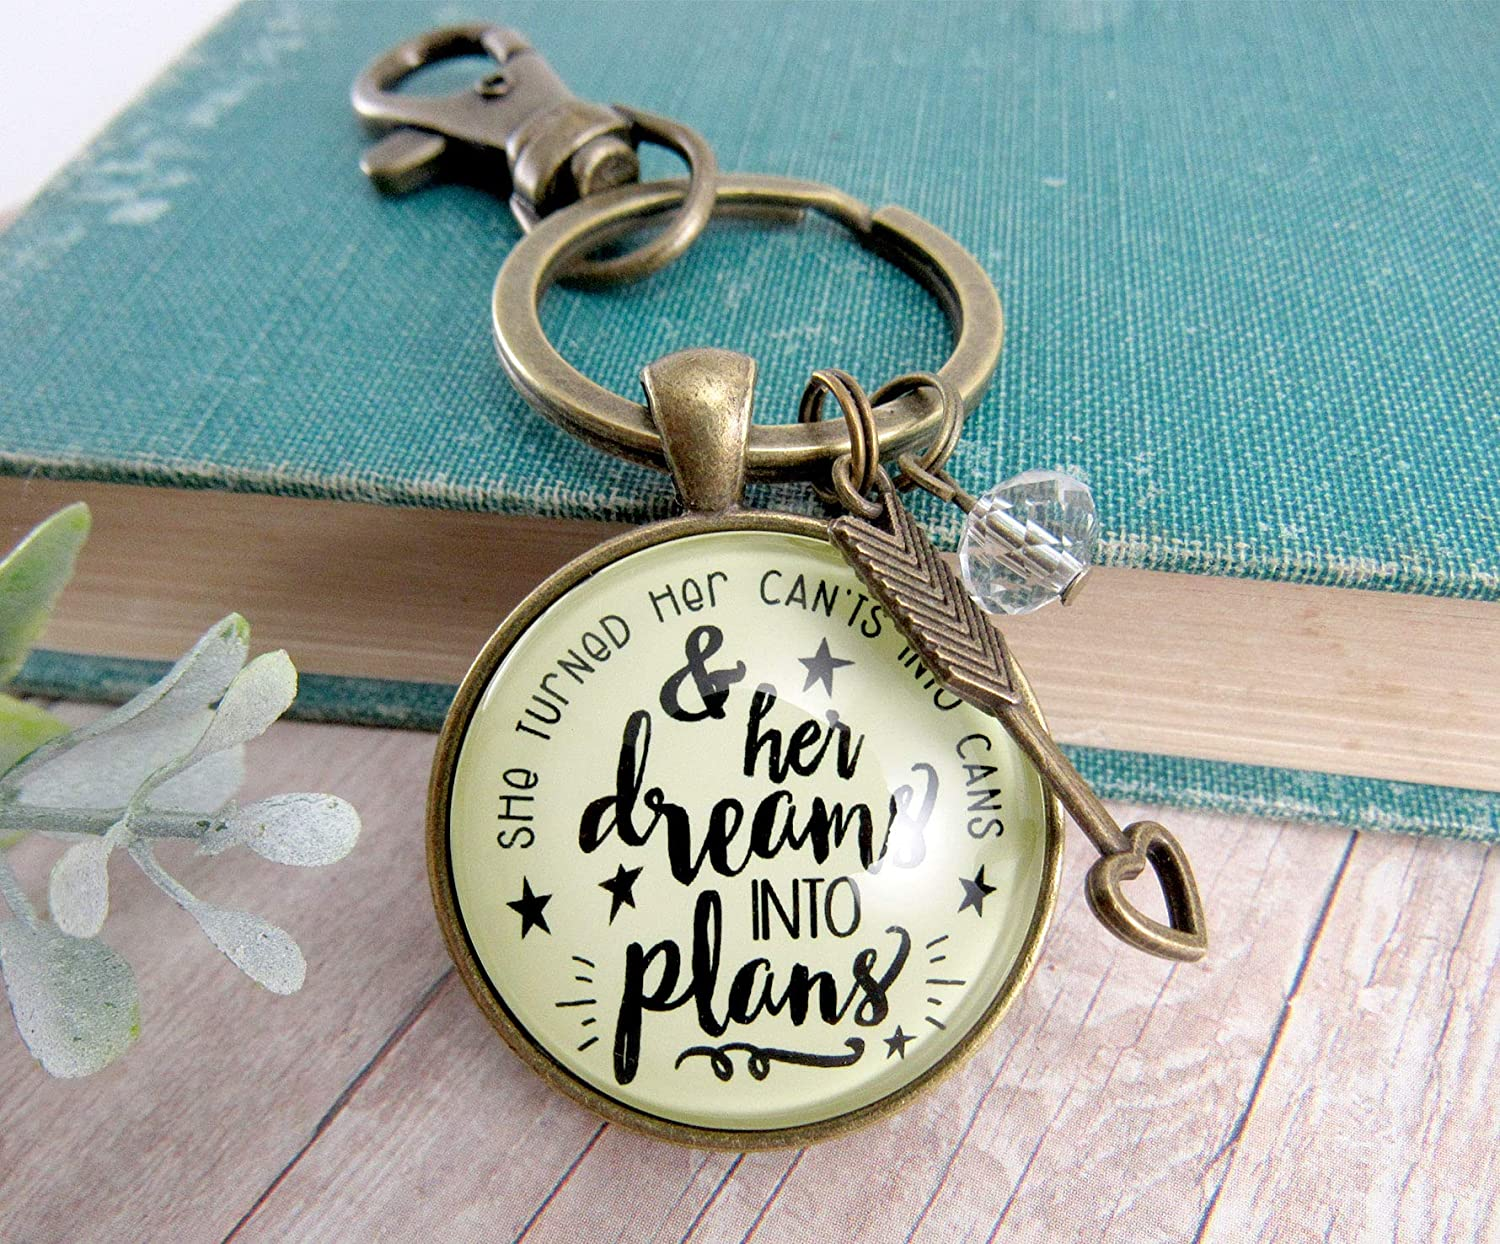 Gutsy Goodness Dreams Into Plans Keychain Positive Life Words Boss Lady Jewelry